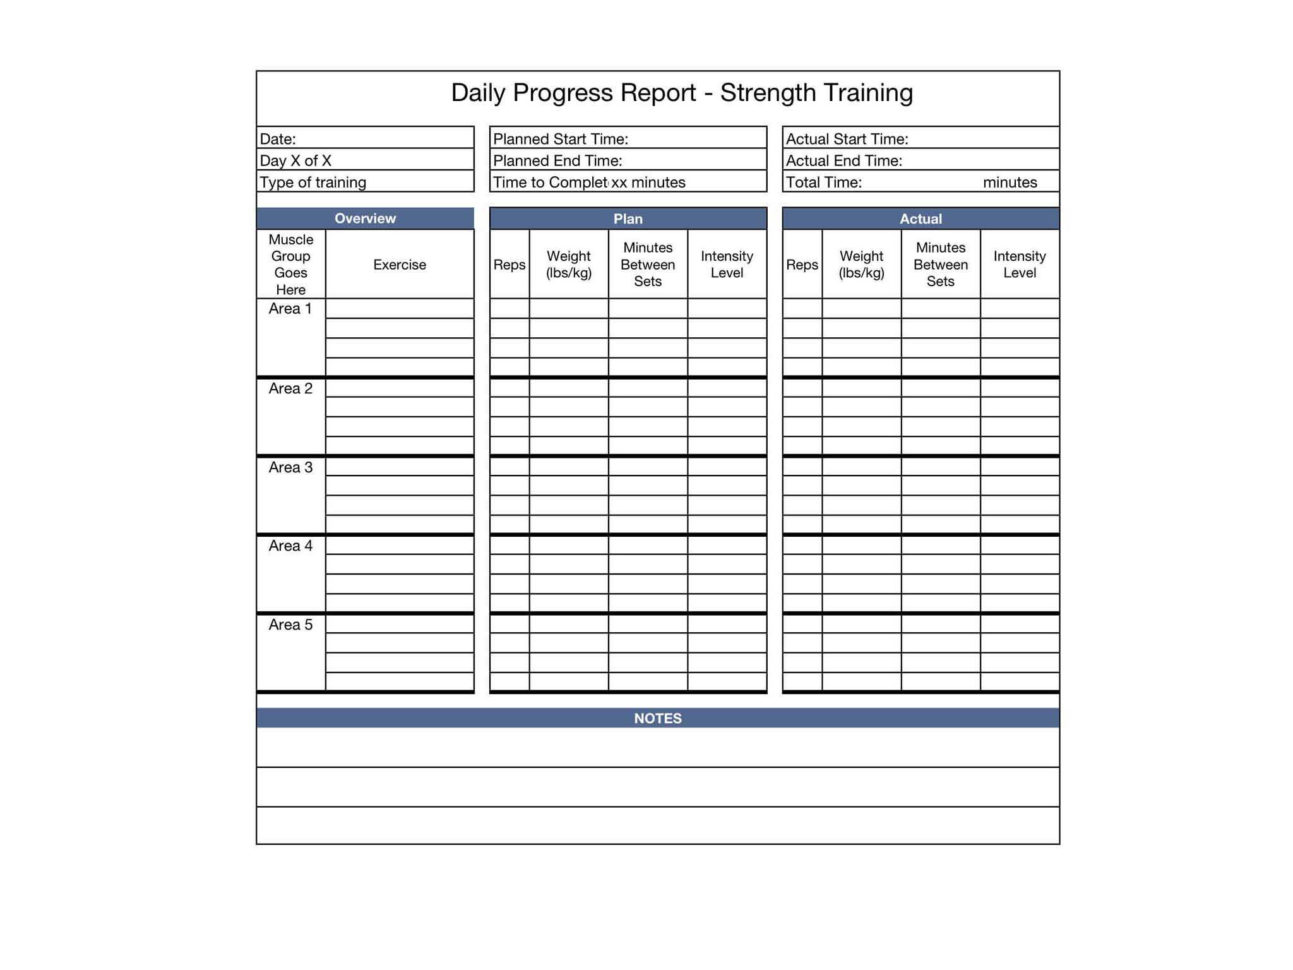 Office Spreadsheet Templates In Templates For Office For Ipad, Iphone, And Ipod Touch  Made For Use